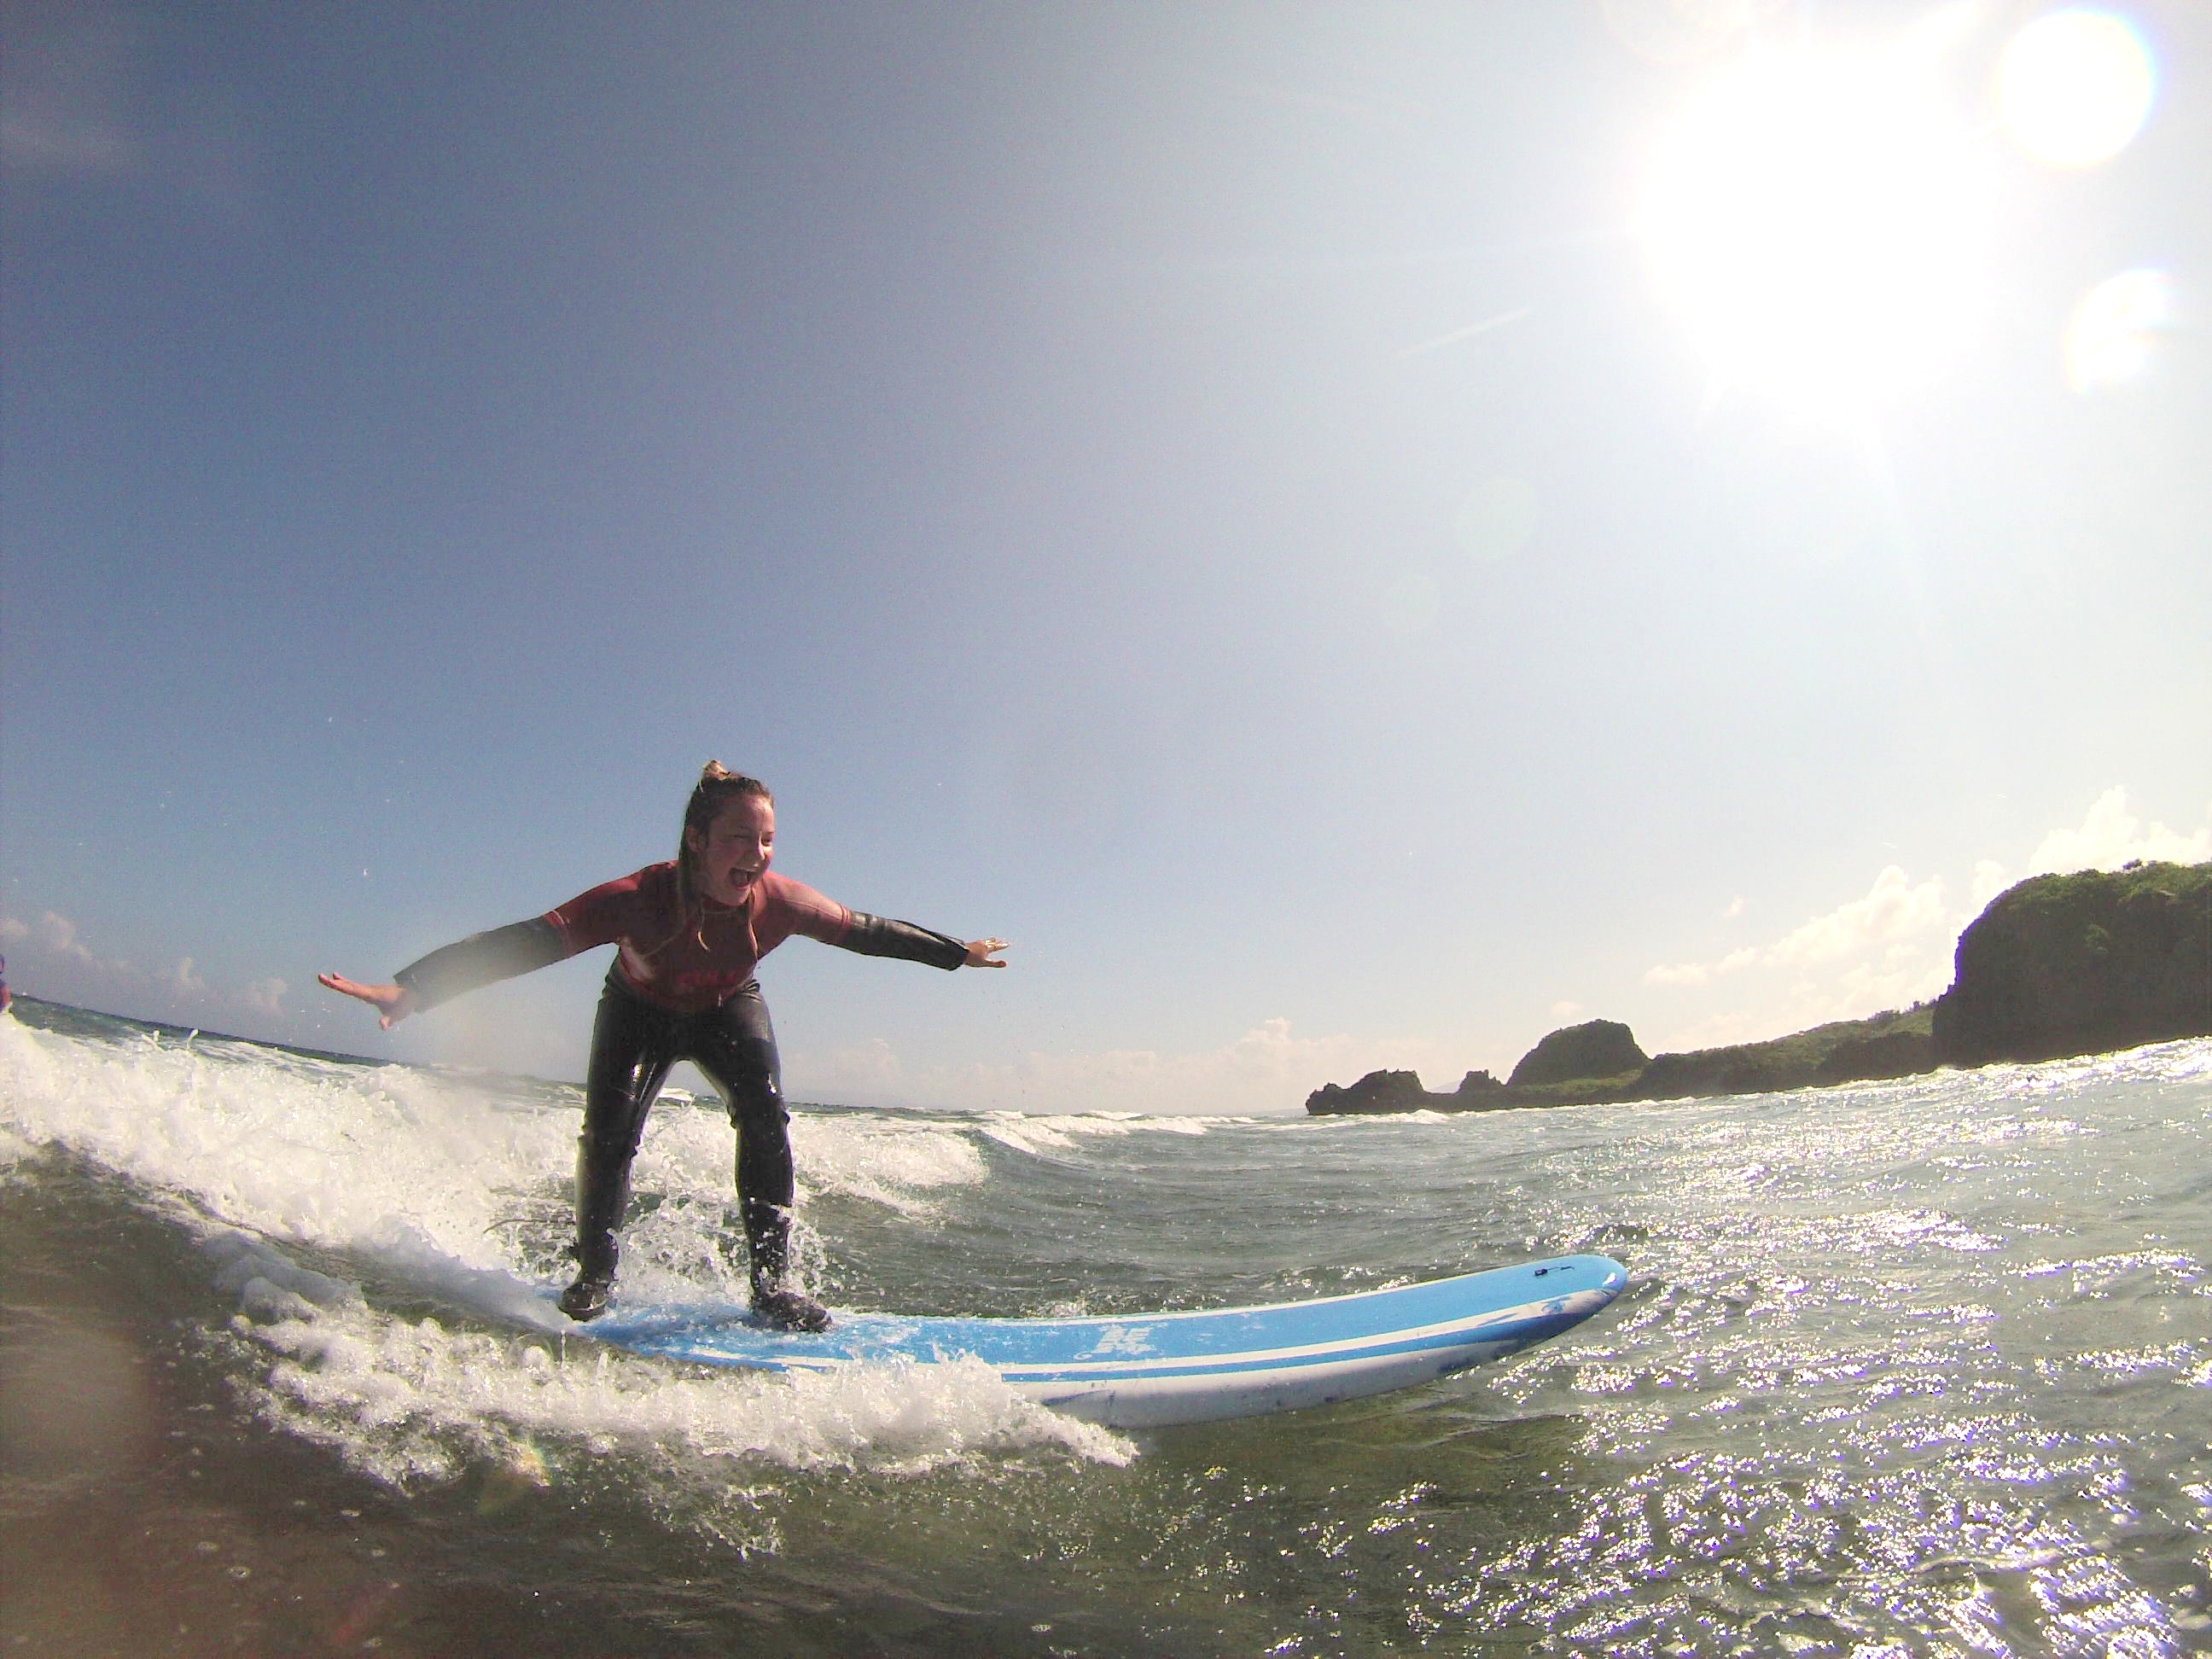 Surfing for the first time4